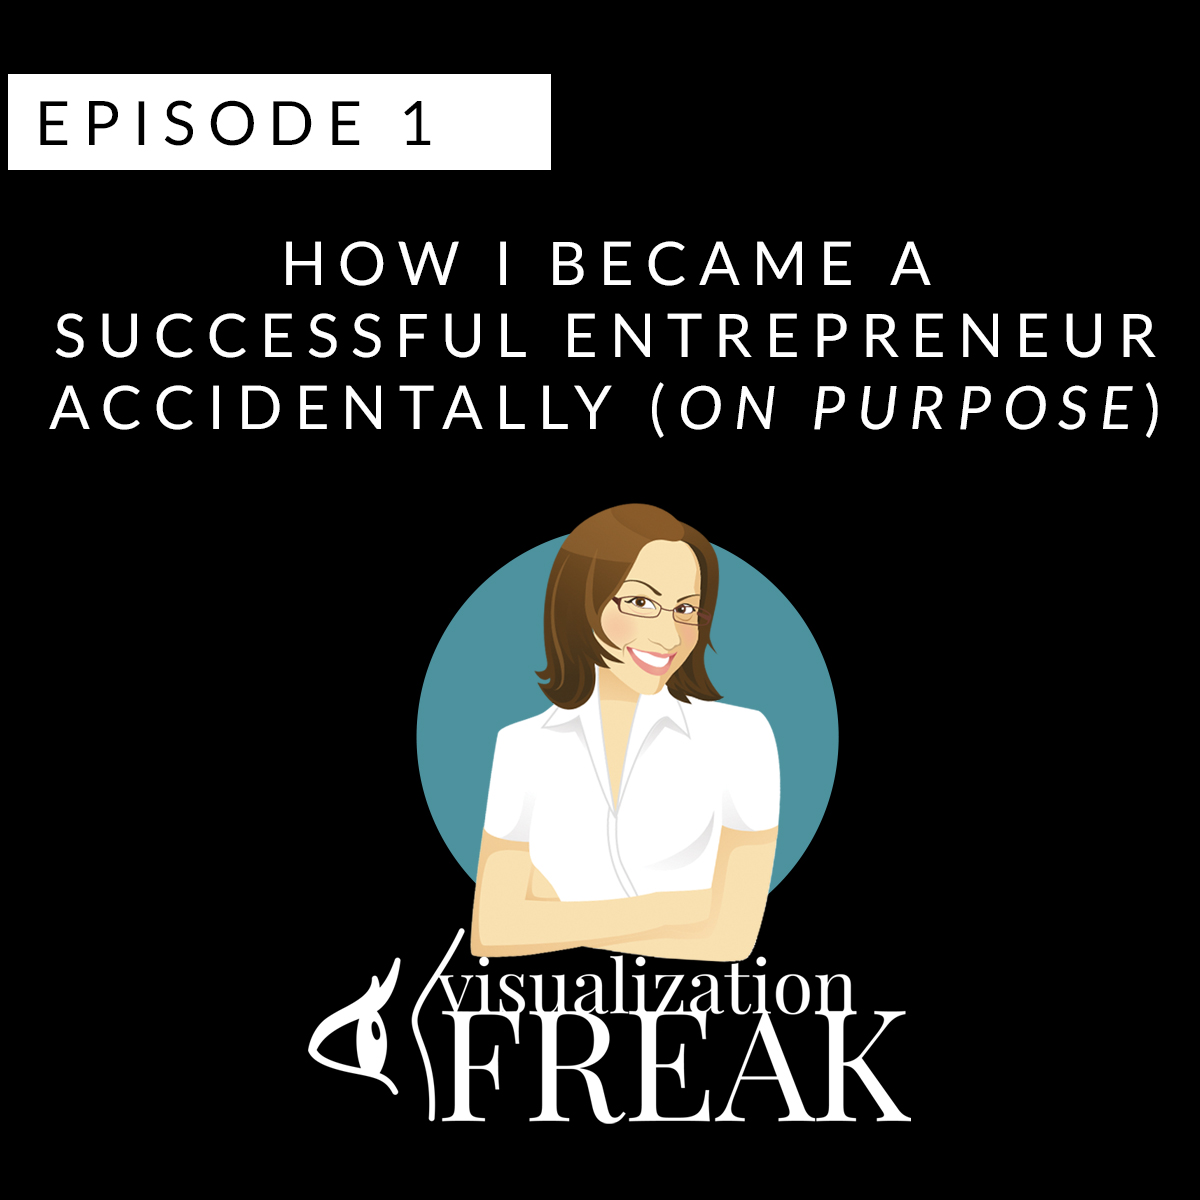 EPISODE 1: How I Became a Successful Entrepreneur Accidentally (on purpose)